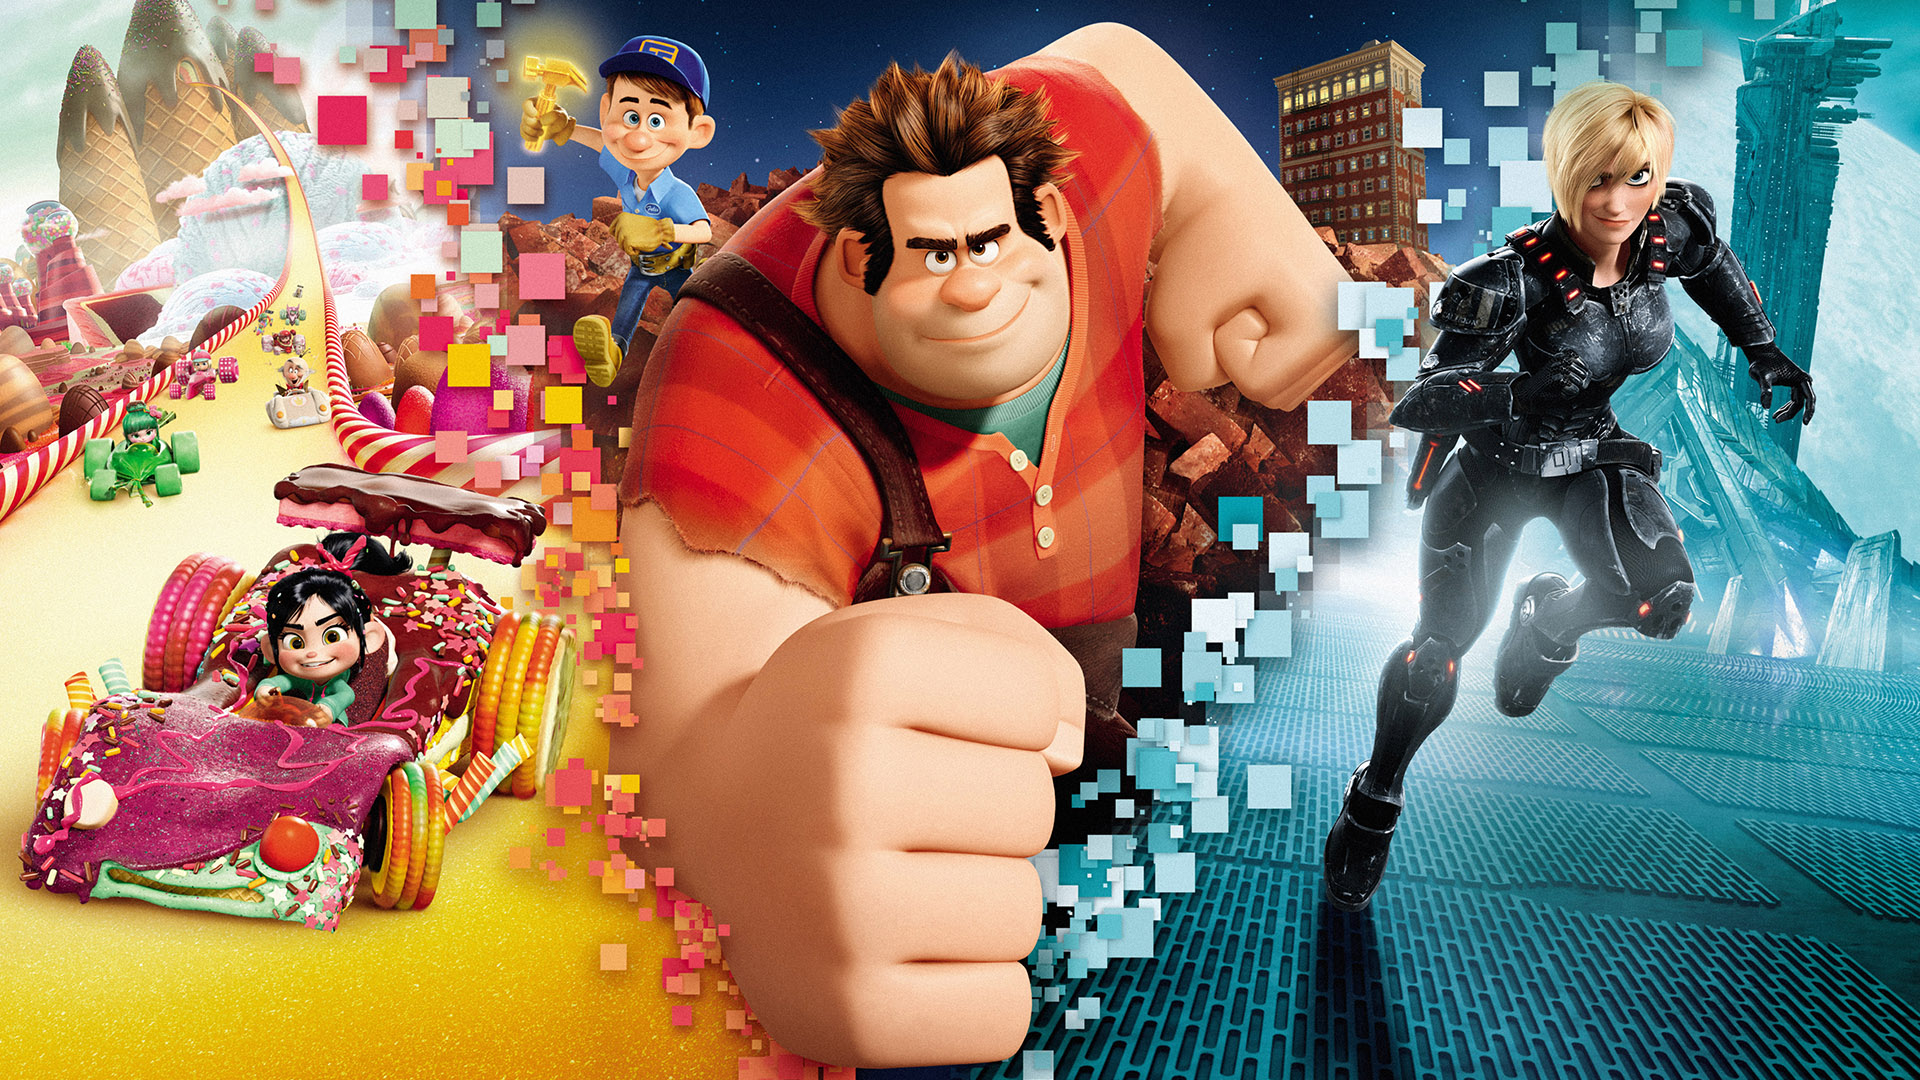 wallpaper rompe ralph hd